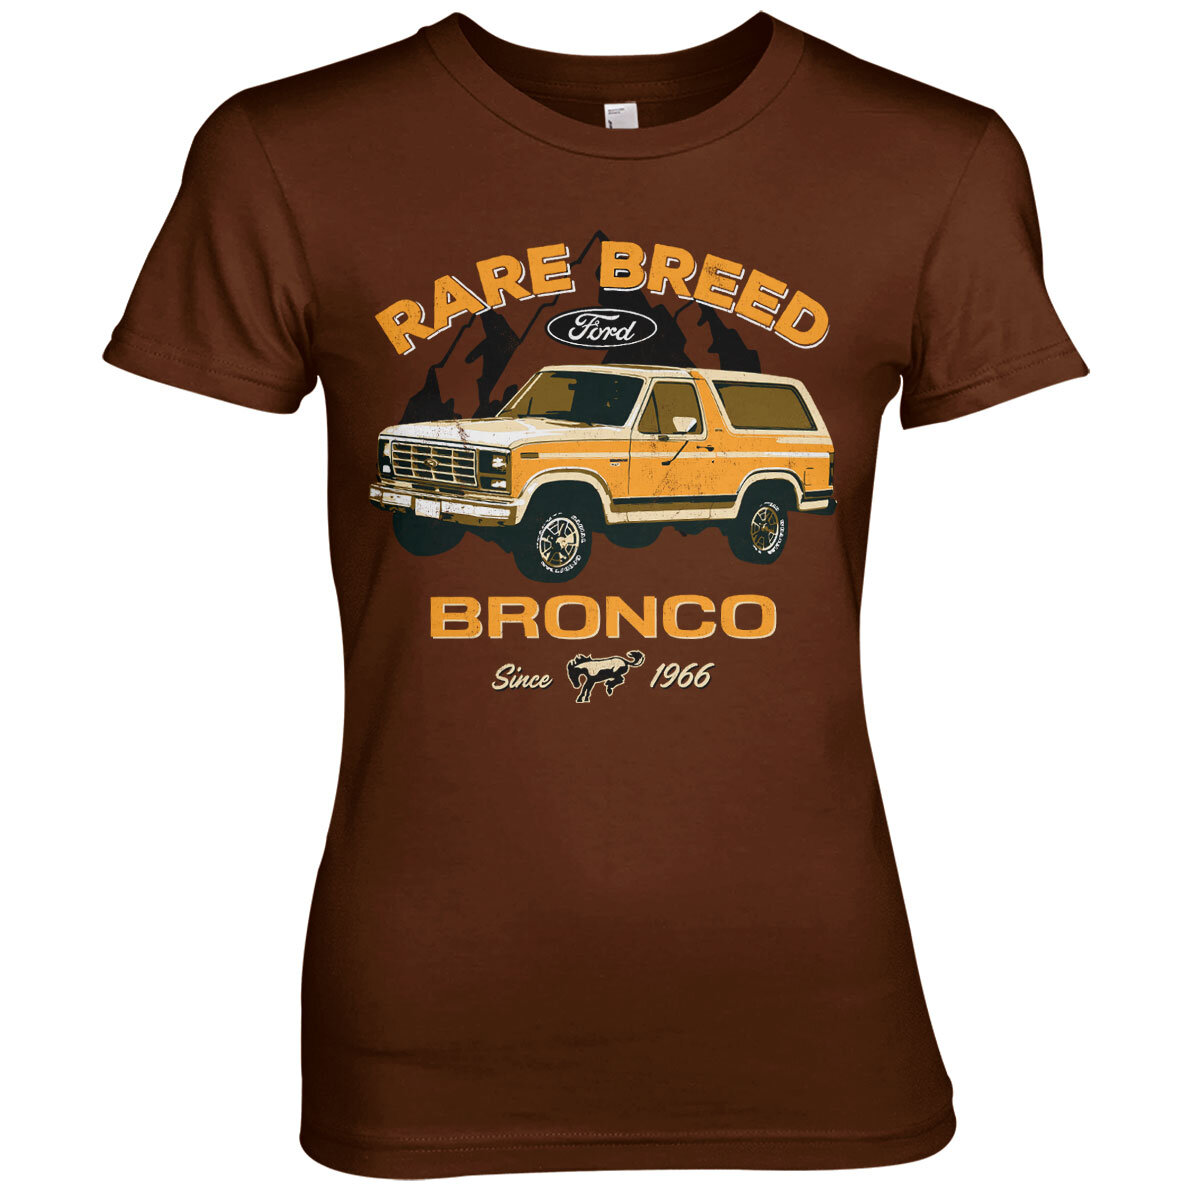 Ford Bronco - Rare Breed Girly Tee